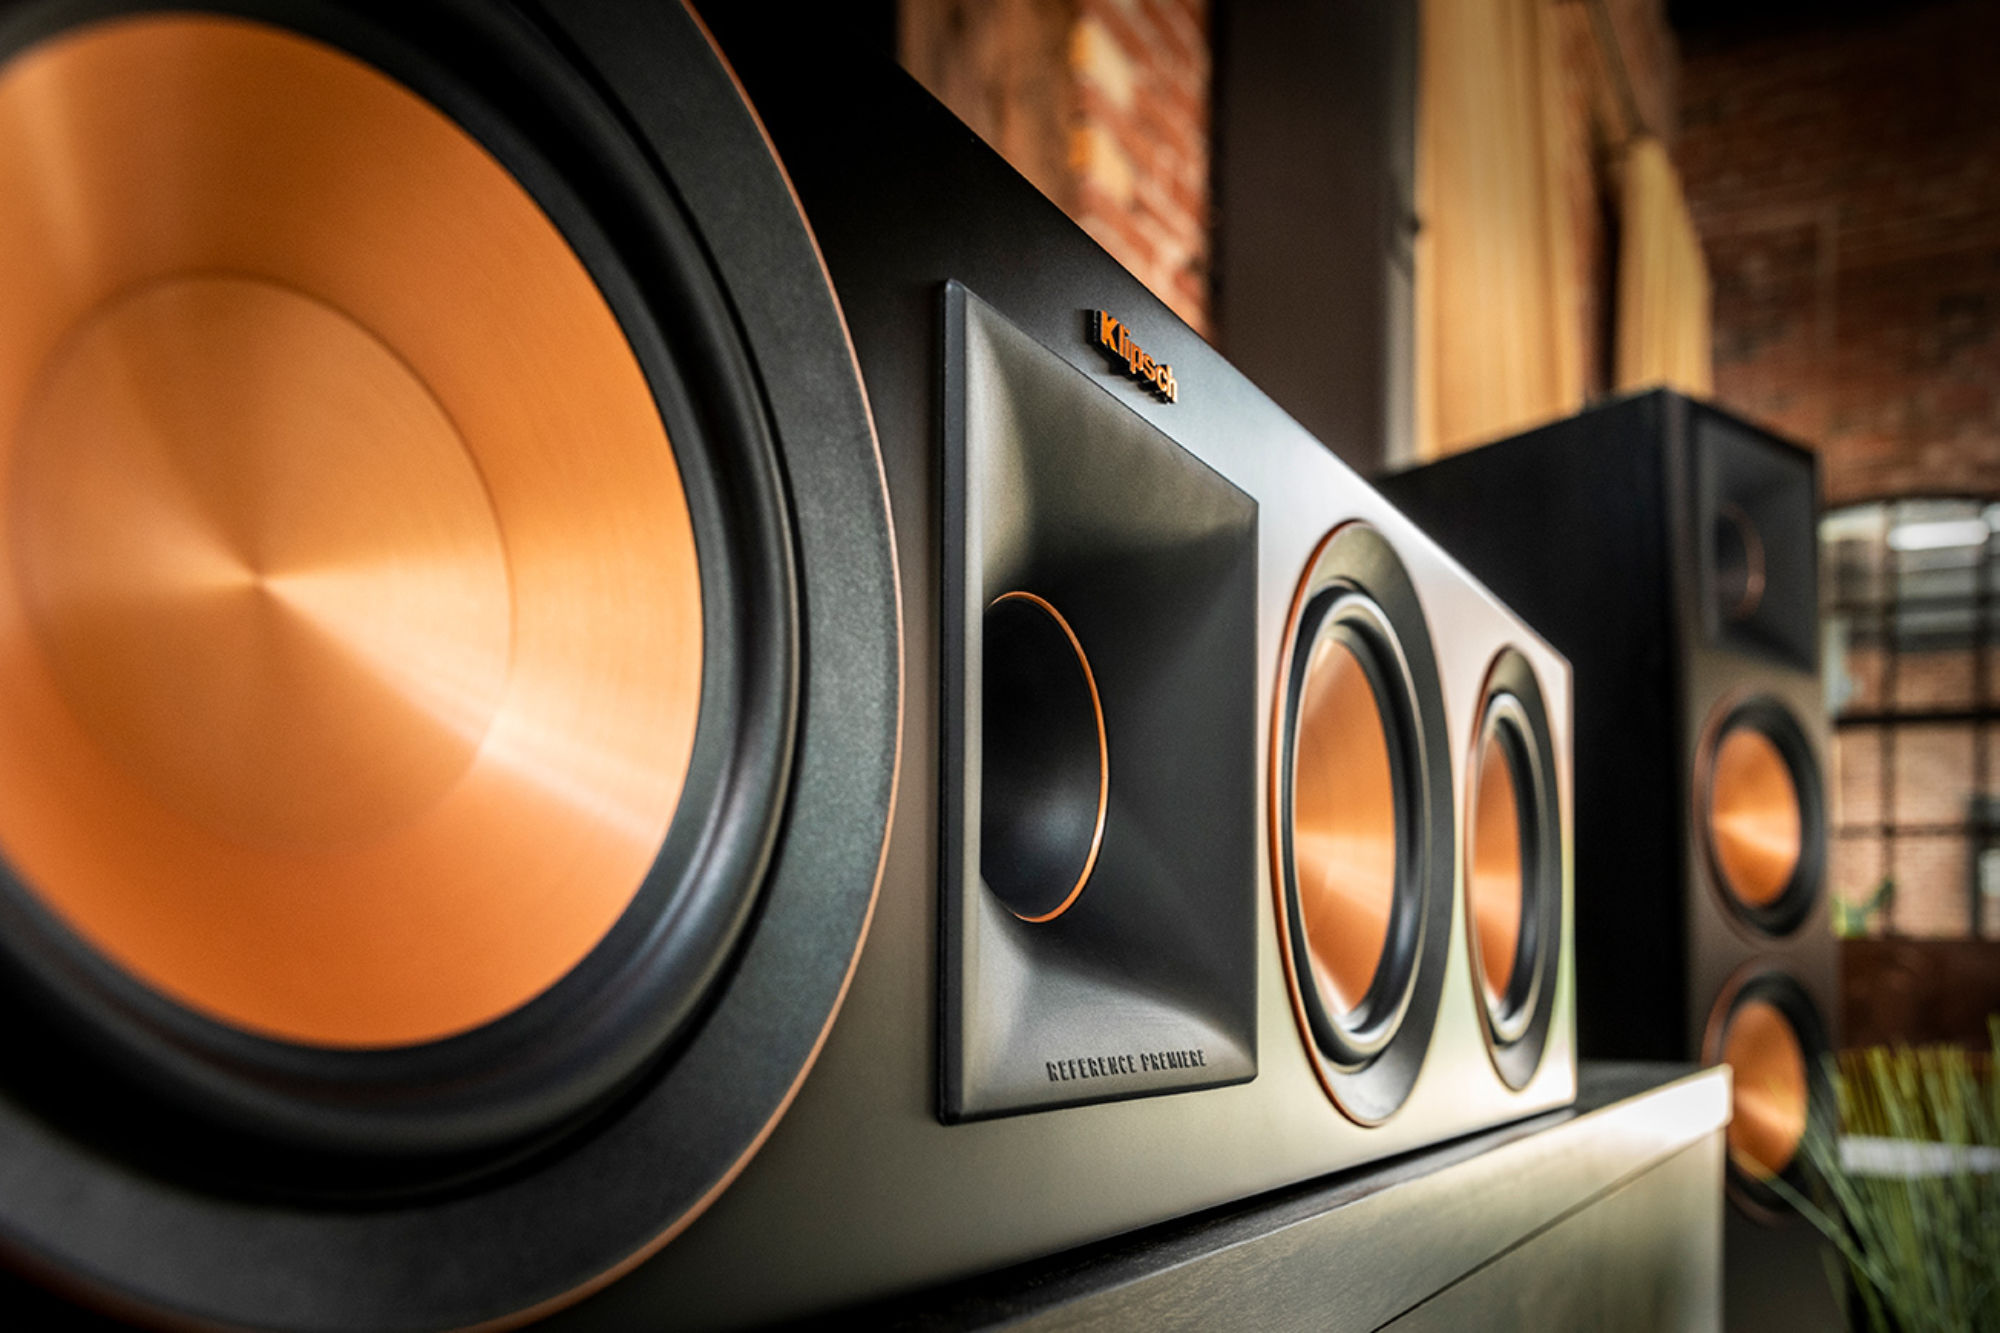 Klipsch best center channel speaker